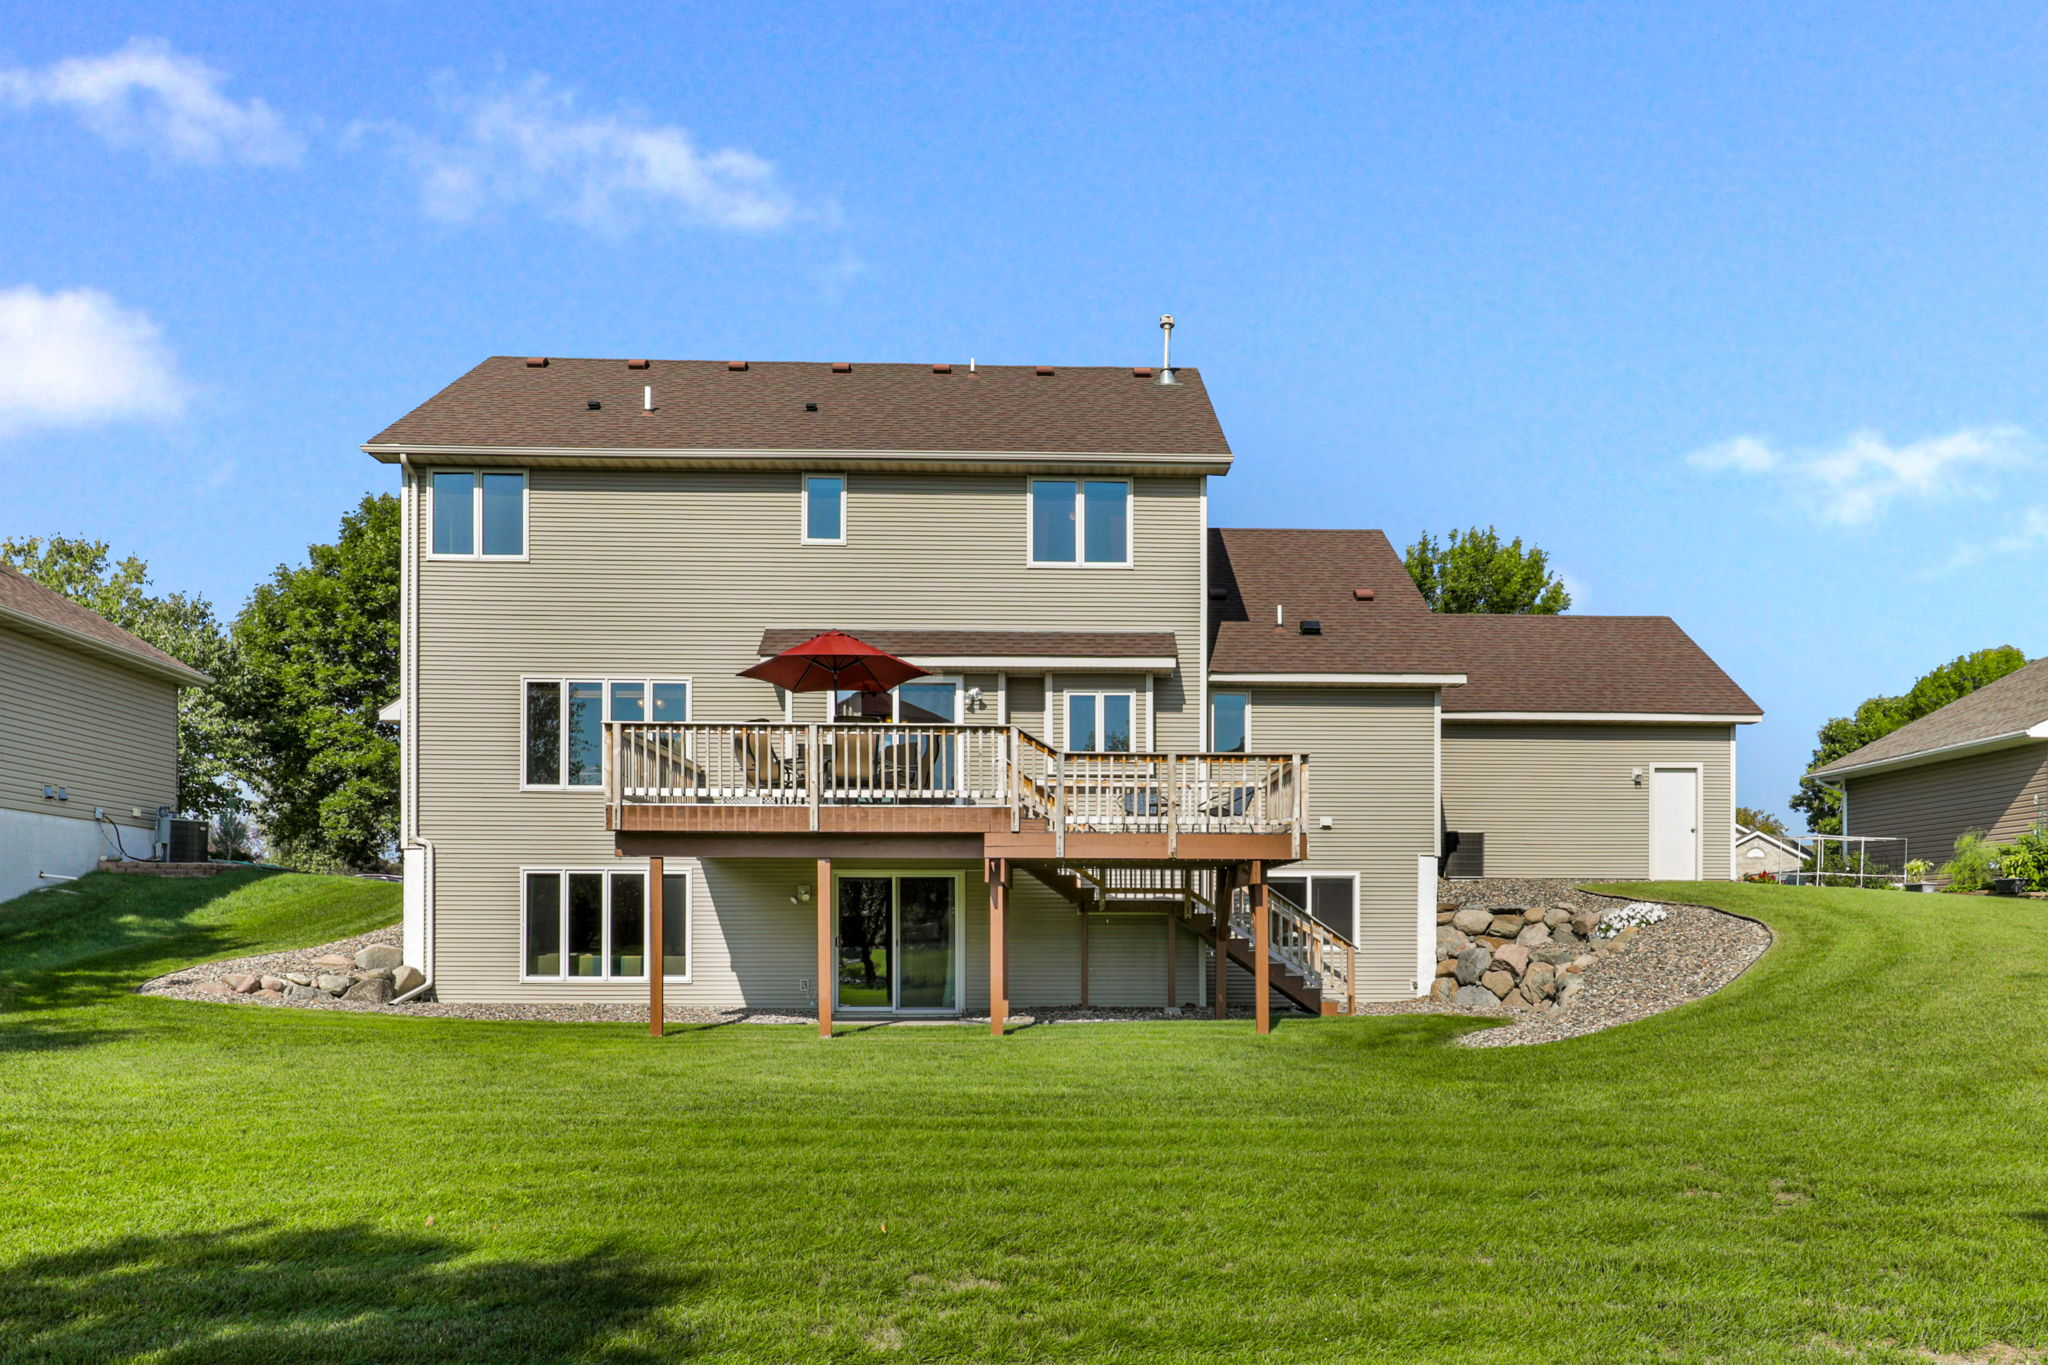 6652 Clearwater Creek Dr, Lino Lakes, MN 55038, USA Photo 49